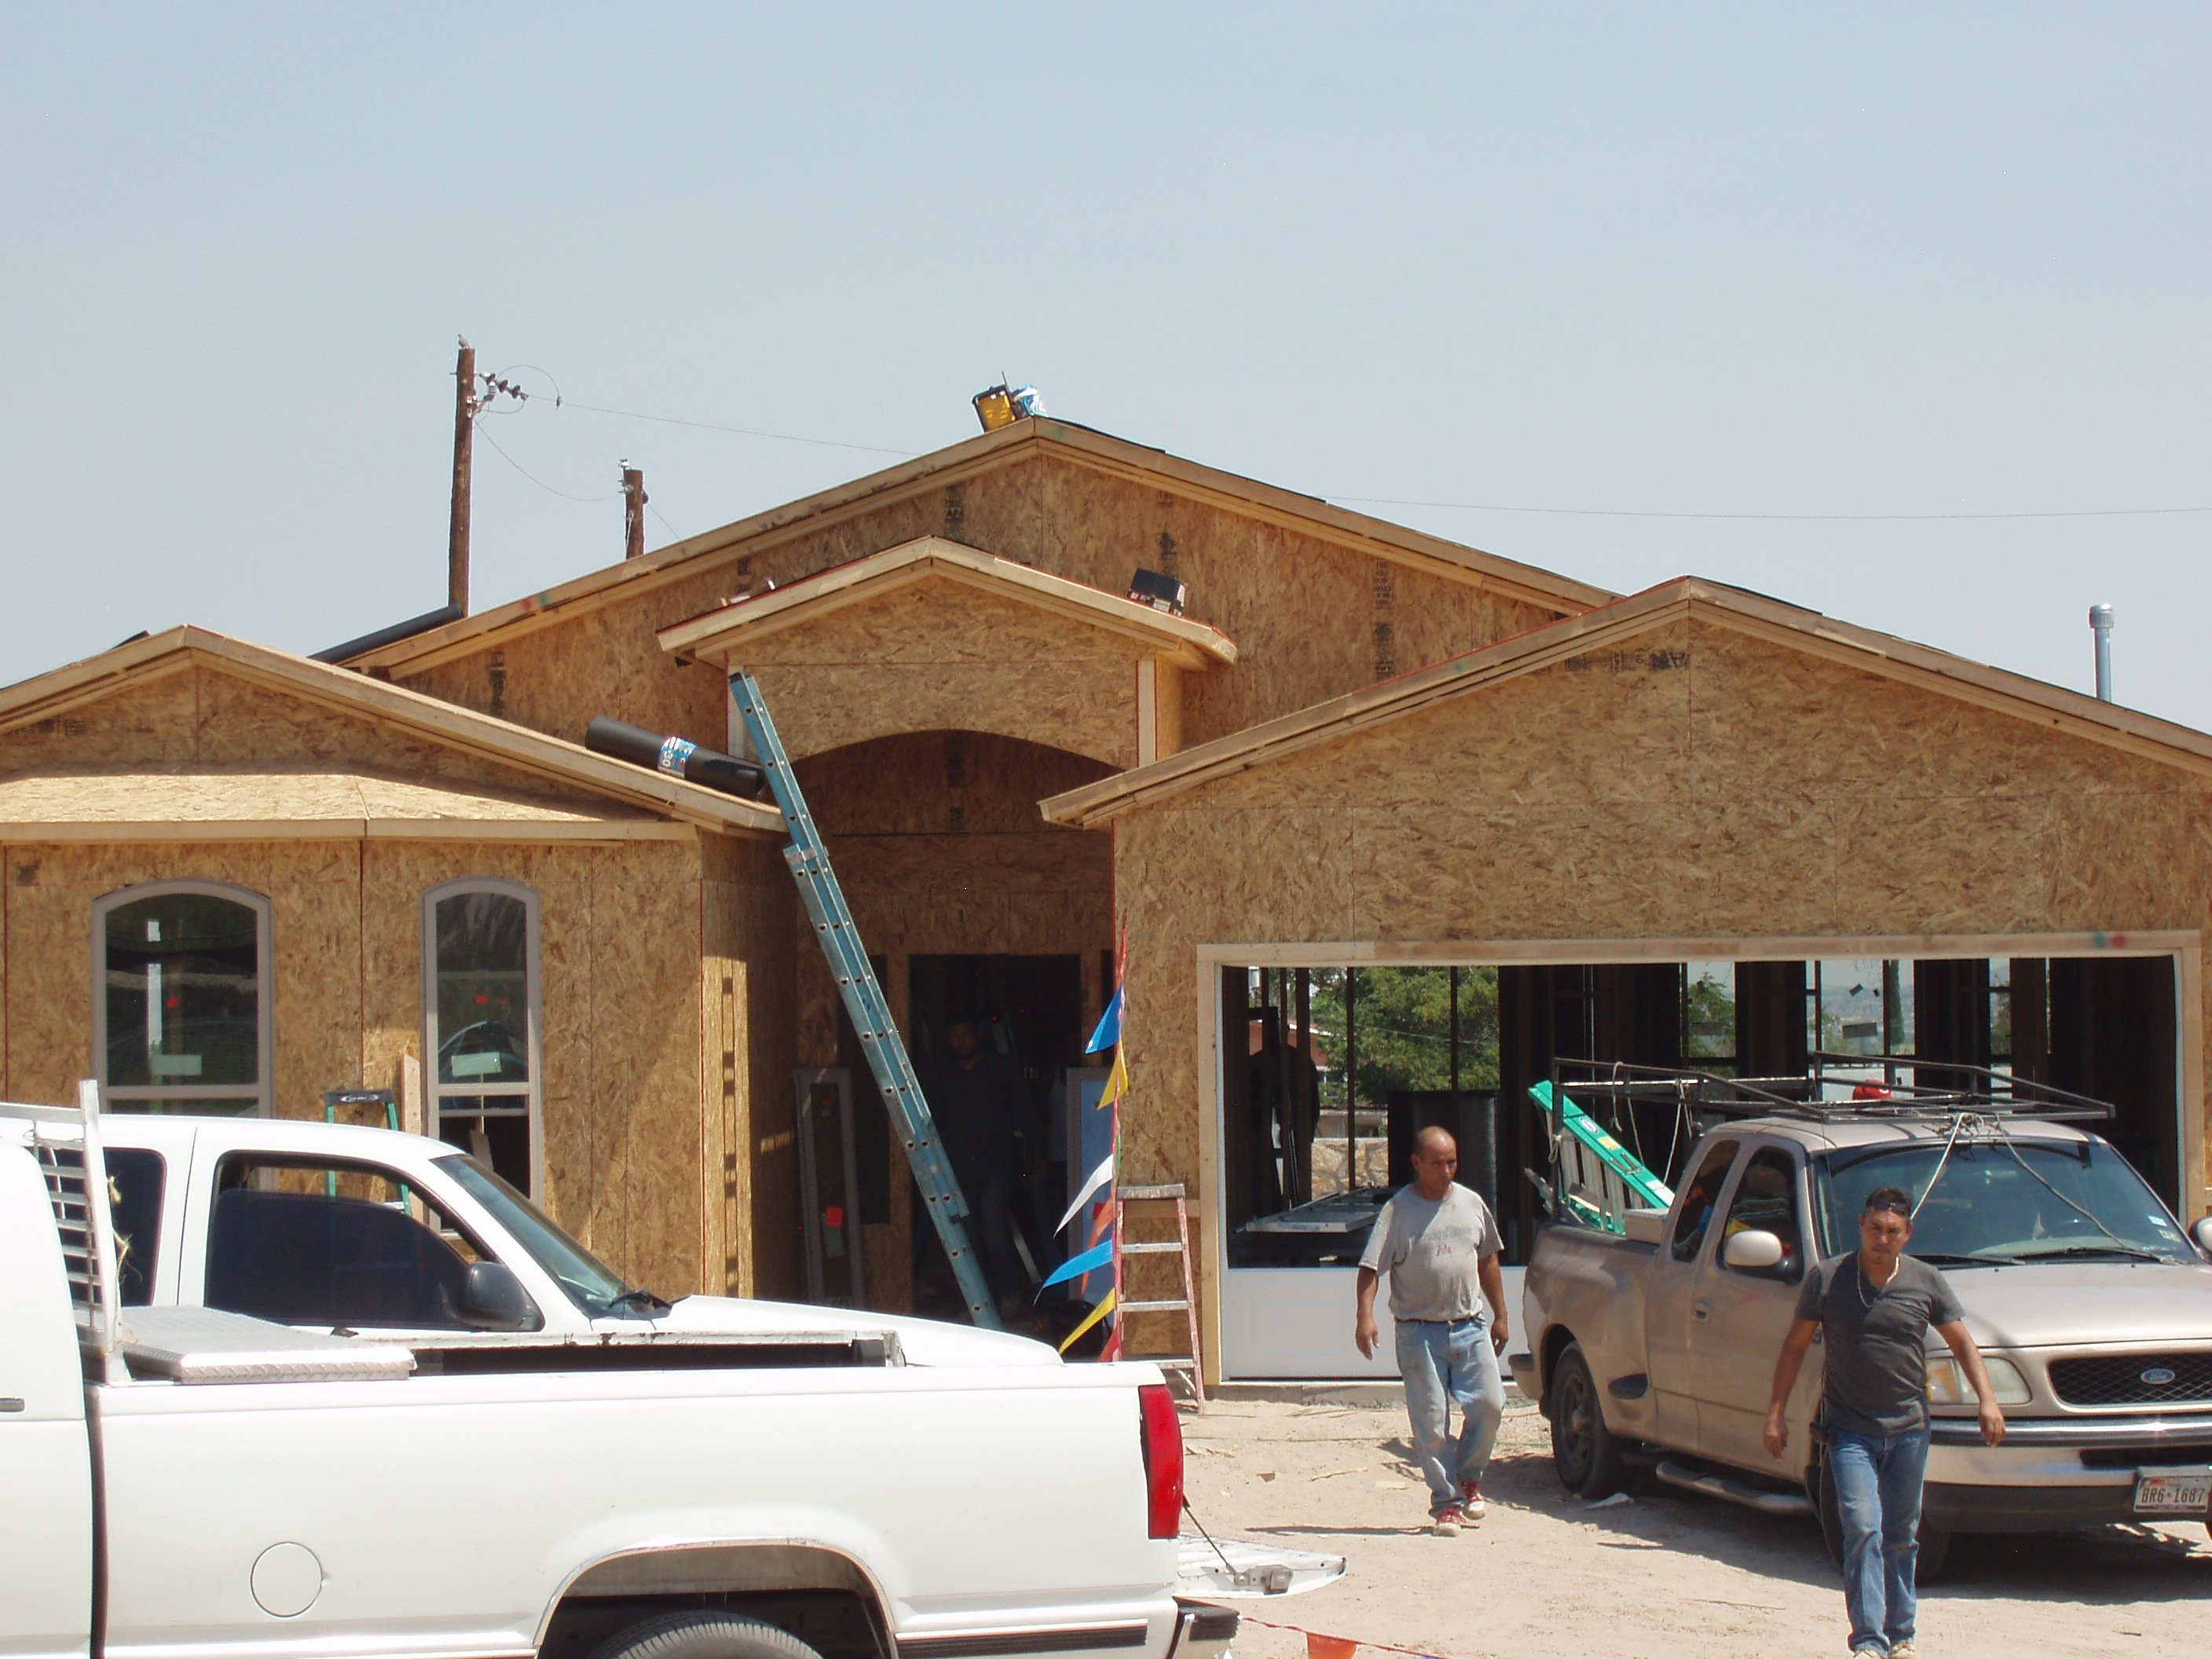 Workman Build New Home In Sunland Park That Was Financed With A USDA